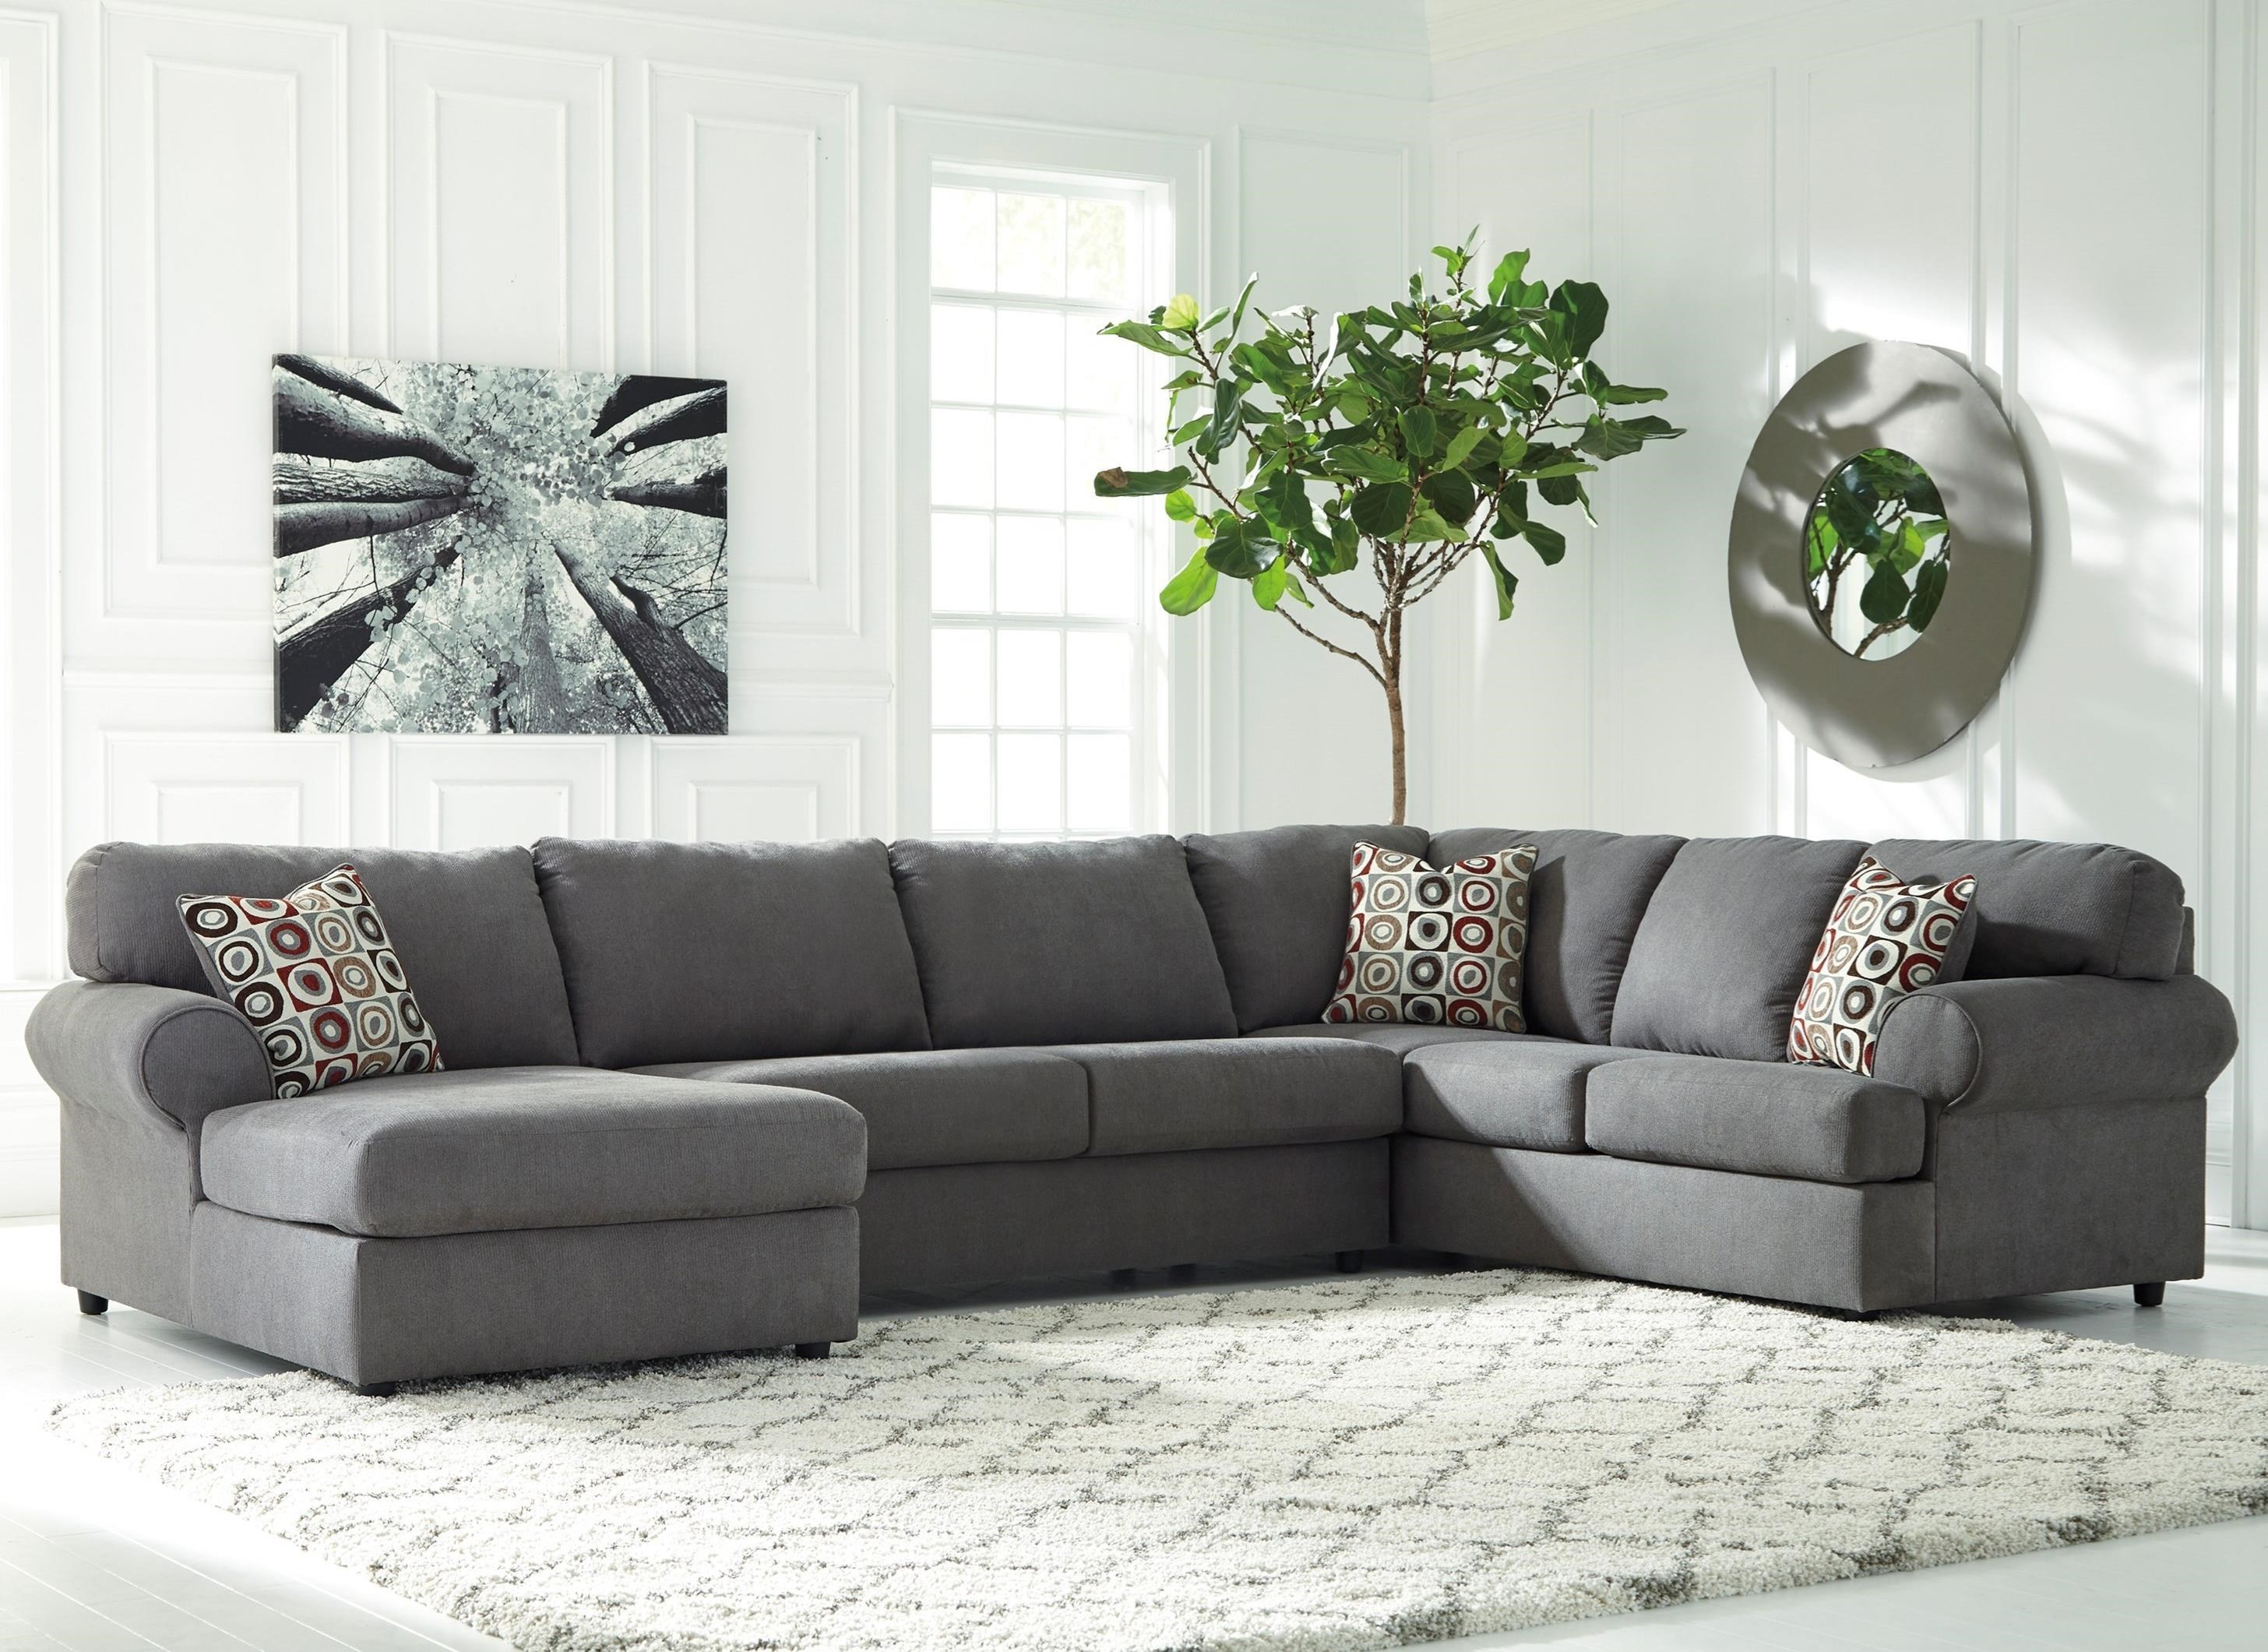 Signature Design by Ashley Jayceon 3-Piece Sectional with Left Chaise  sc 1 st  Value City Furniture : value city sectional - Sectionals, Sofas & Couches